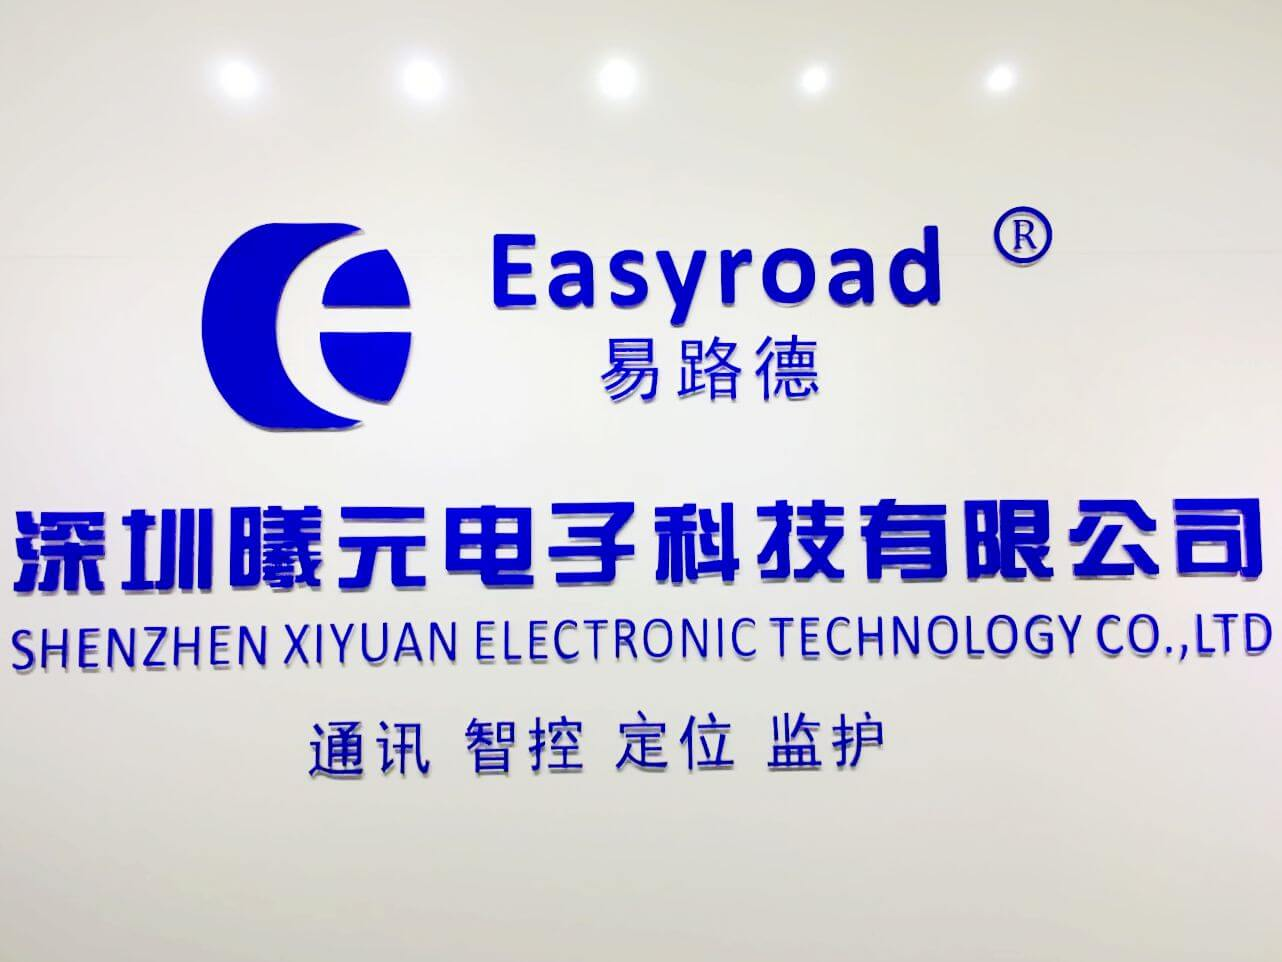 Easyroad Technology